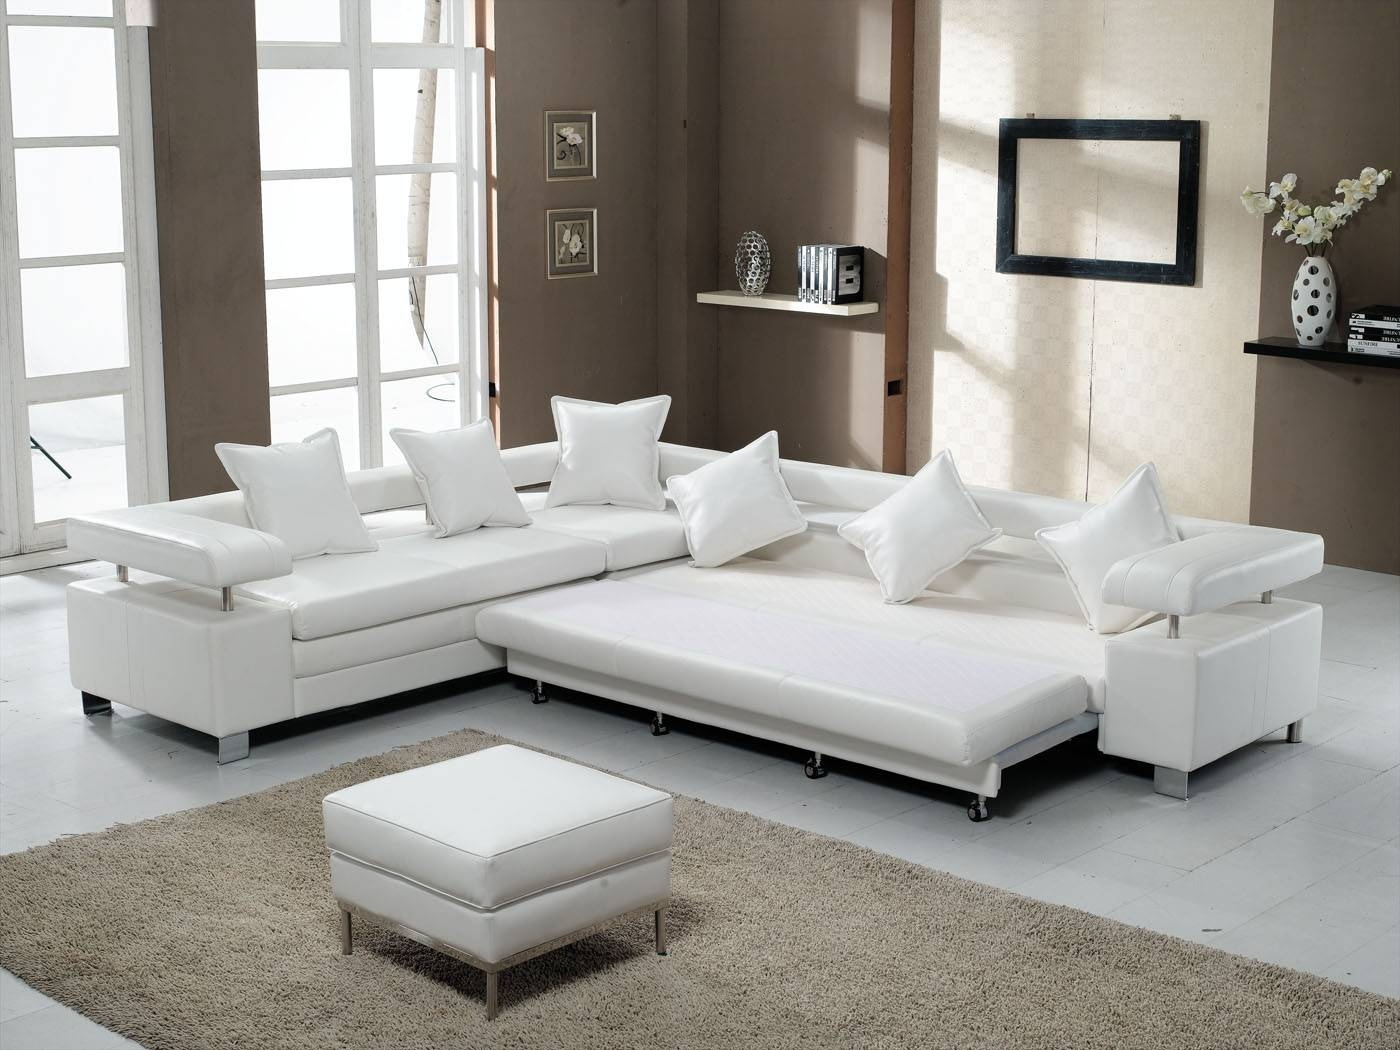 Sofas: Comfortable Simmons Sleeper Sofa For Cozy Sofas Design for Simmons Sleeper Sofas (Image 12 of 15)